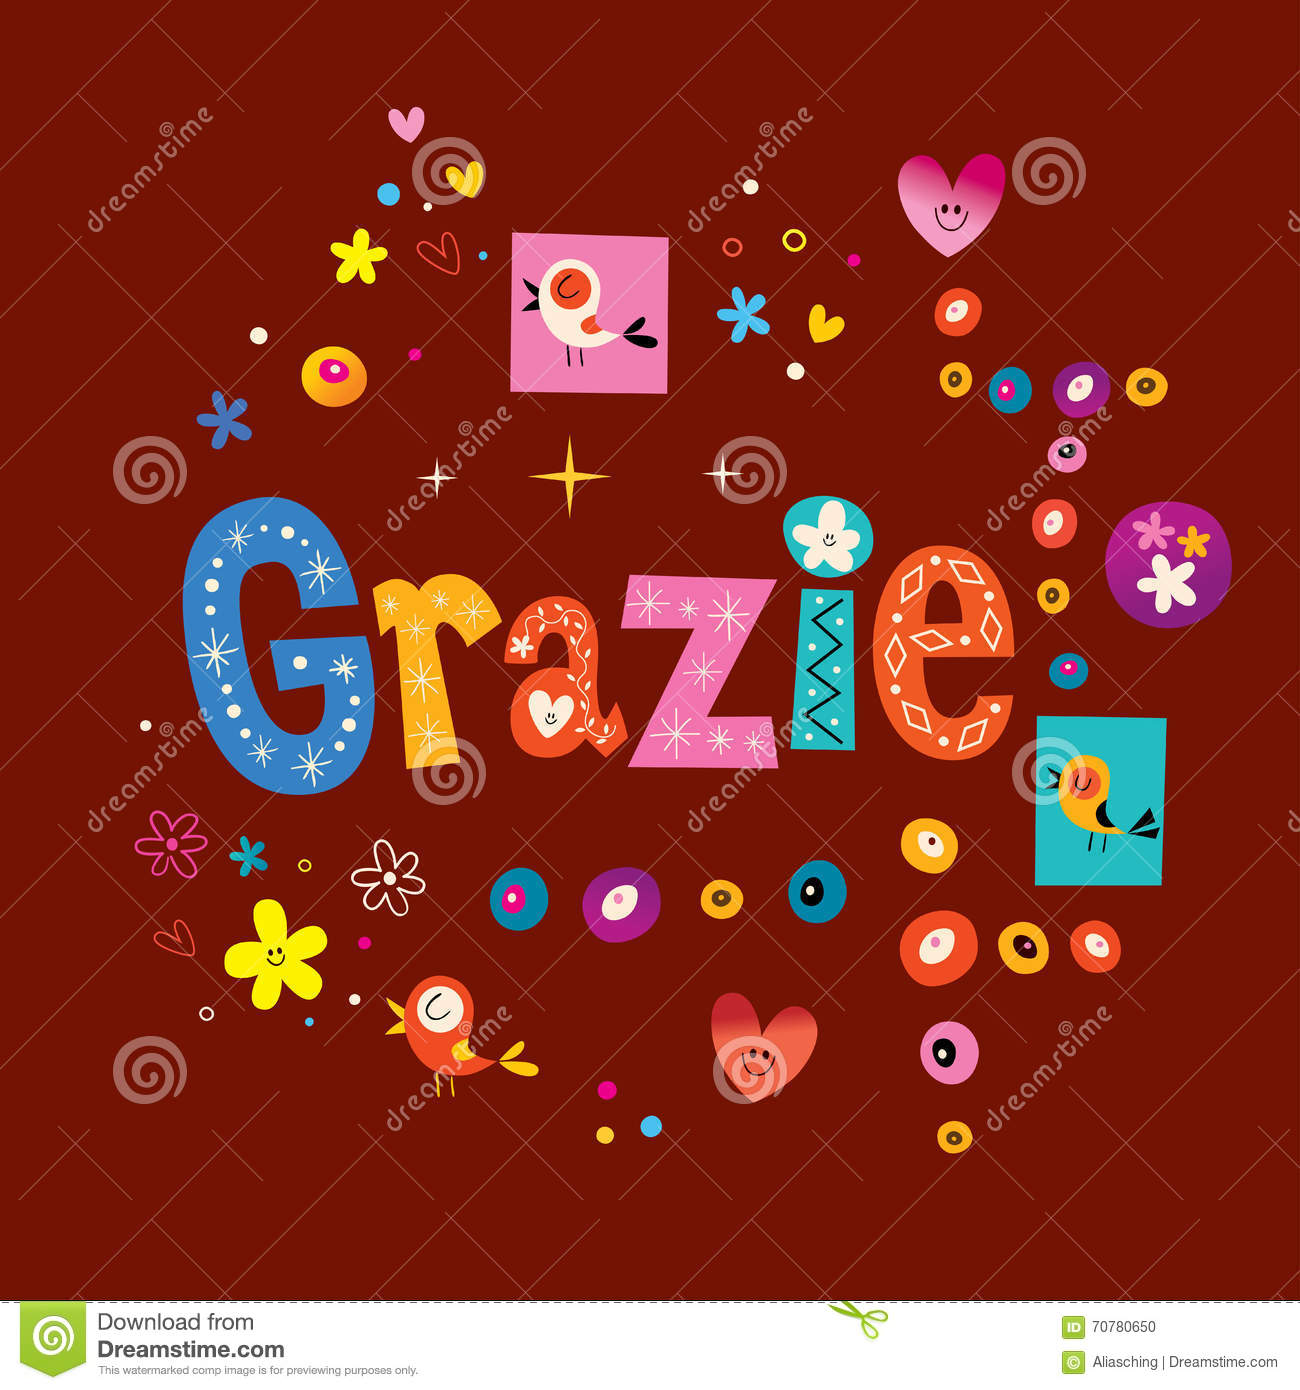 Grazie thank you thanks in italian stock vector illustration of grazie thank you thanks in italian kristyandbryce Image collections